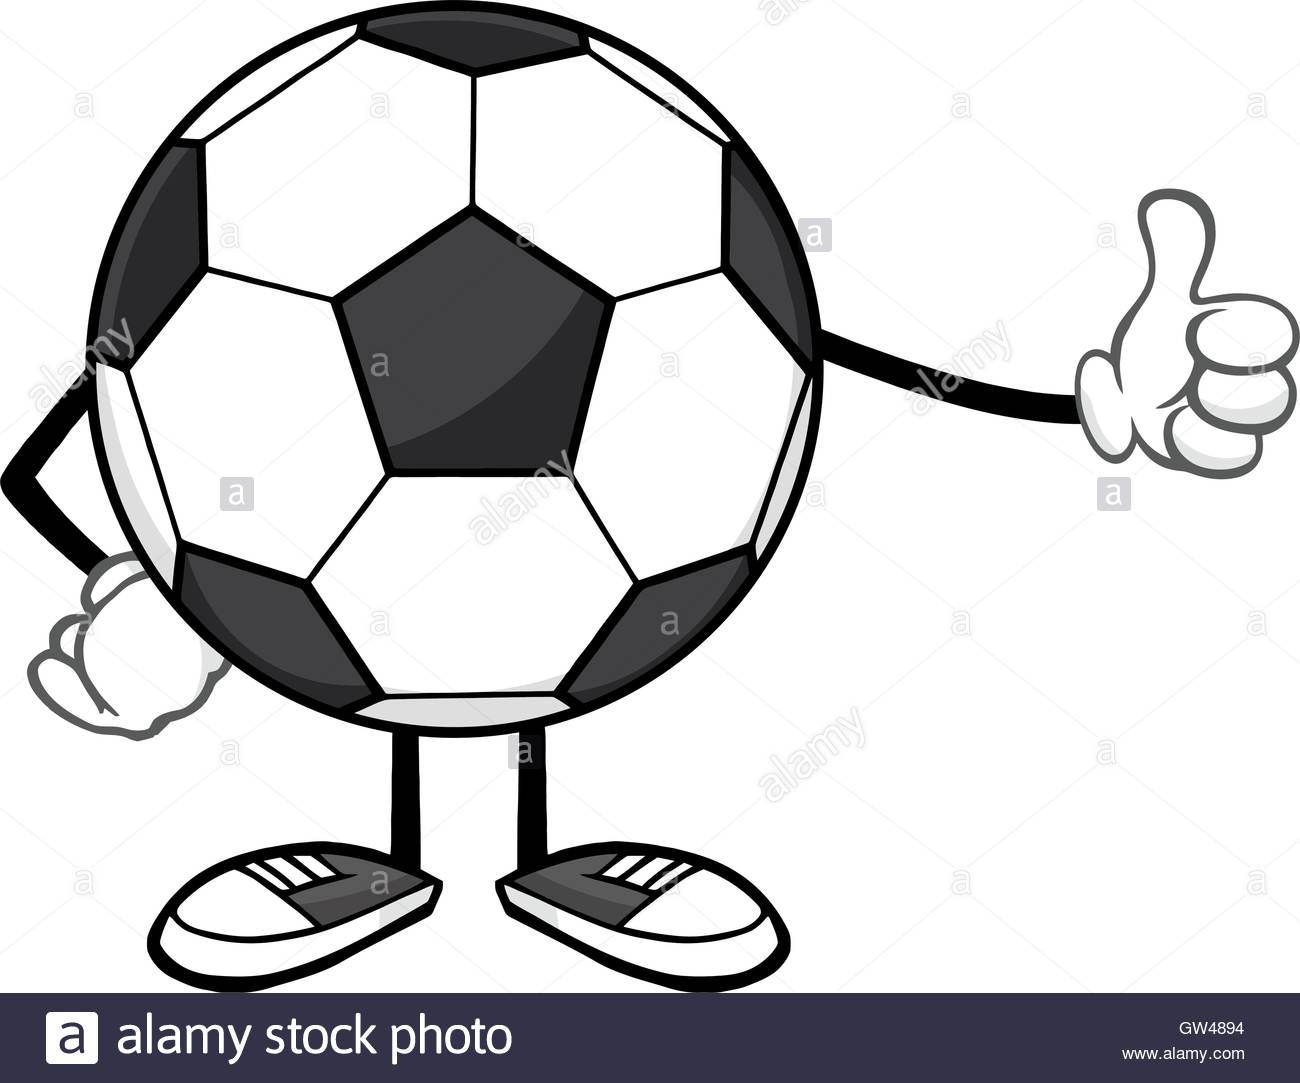 1300x1083 Soccer Ball Faceless Cartoon Mascot Character Giving A Thumb Up